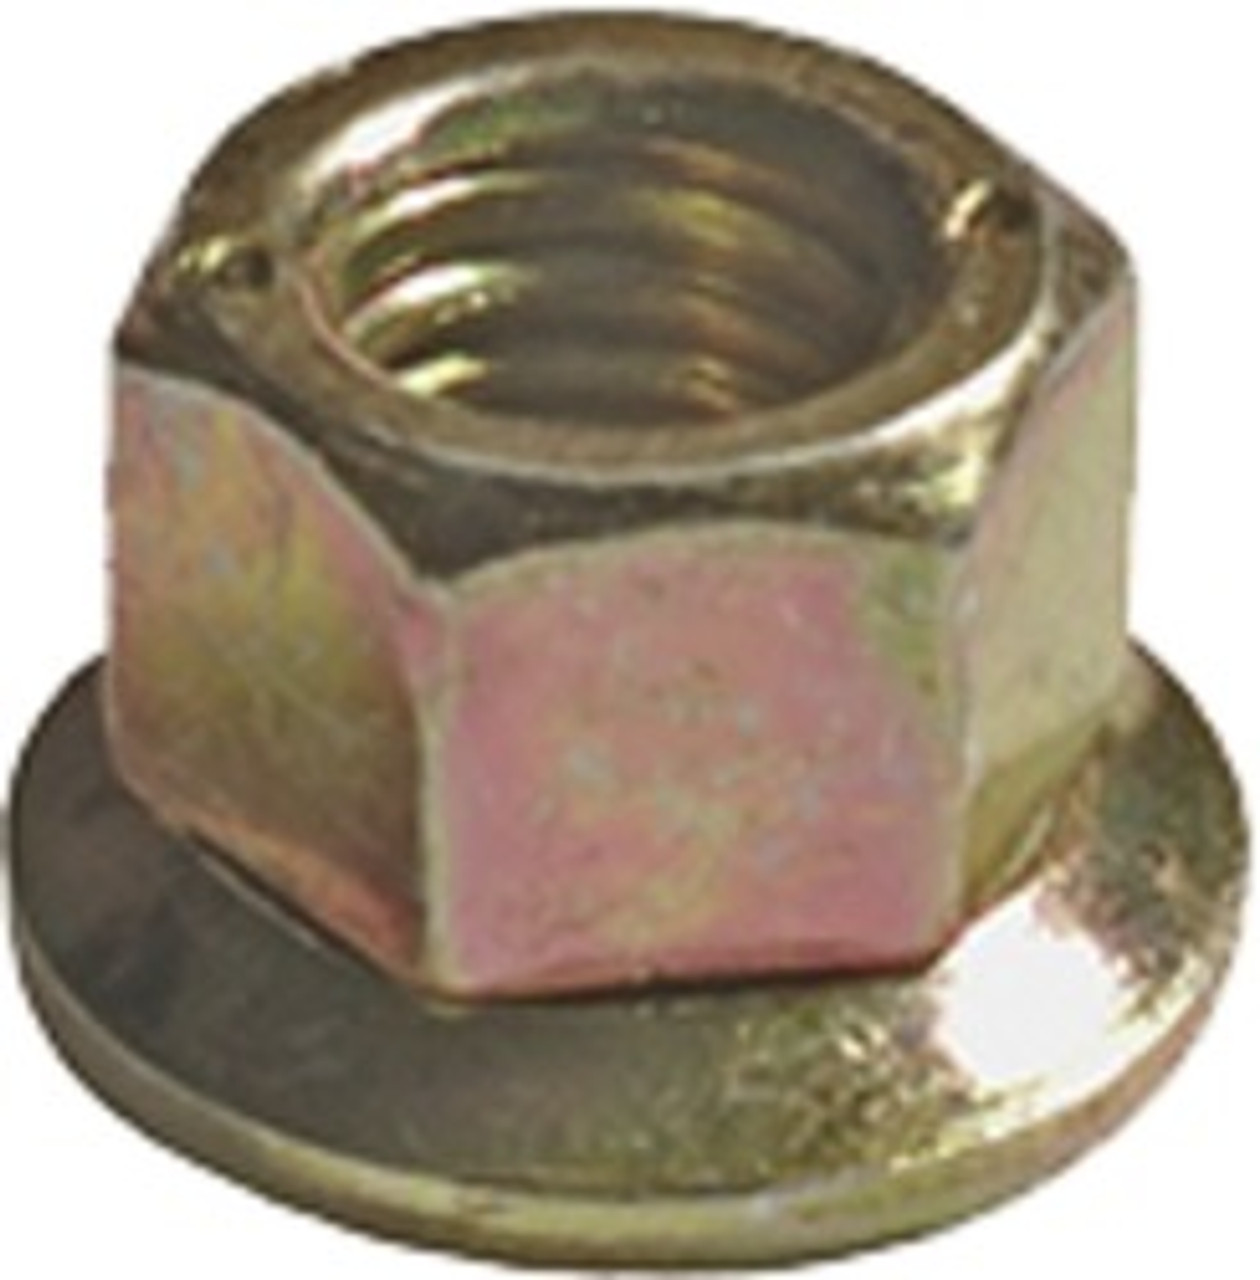 """Free Spinning Washer Nut 1/4""""- 20 Thread Washer O.D. : 5/8"""" Hex Size: 7/16"""" OEM# 3866846, 385400 Yellow Zinc 50 Per Box Click Next Image For Nut Size Chart"""